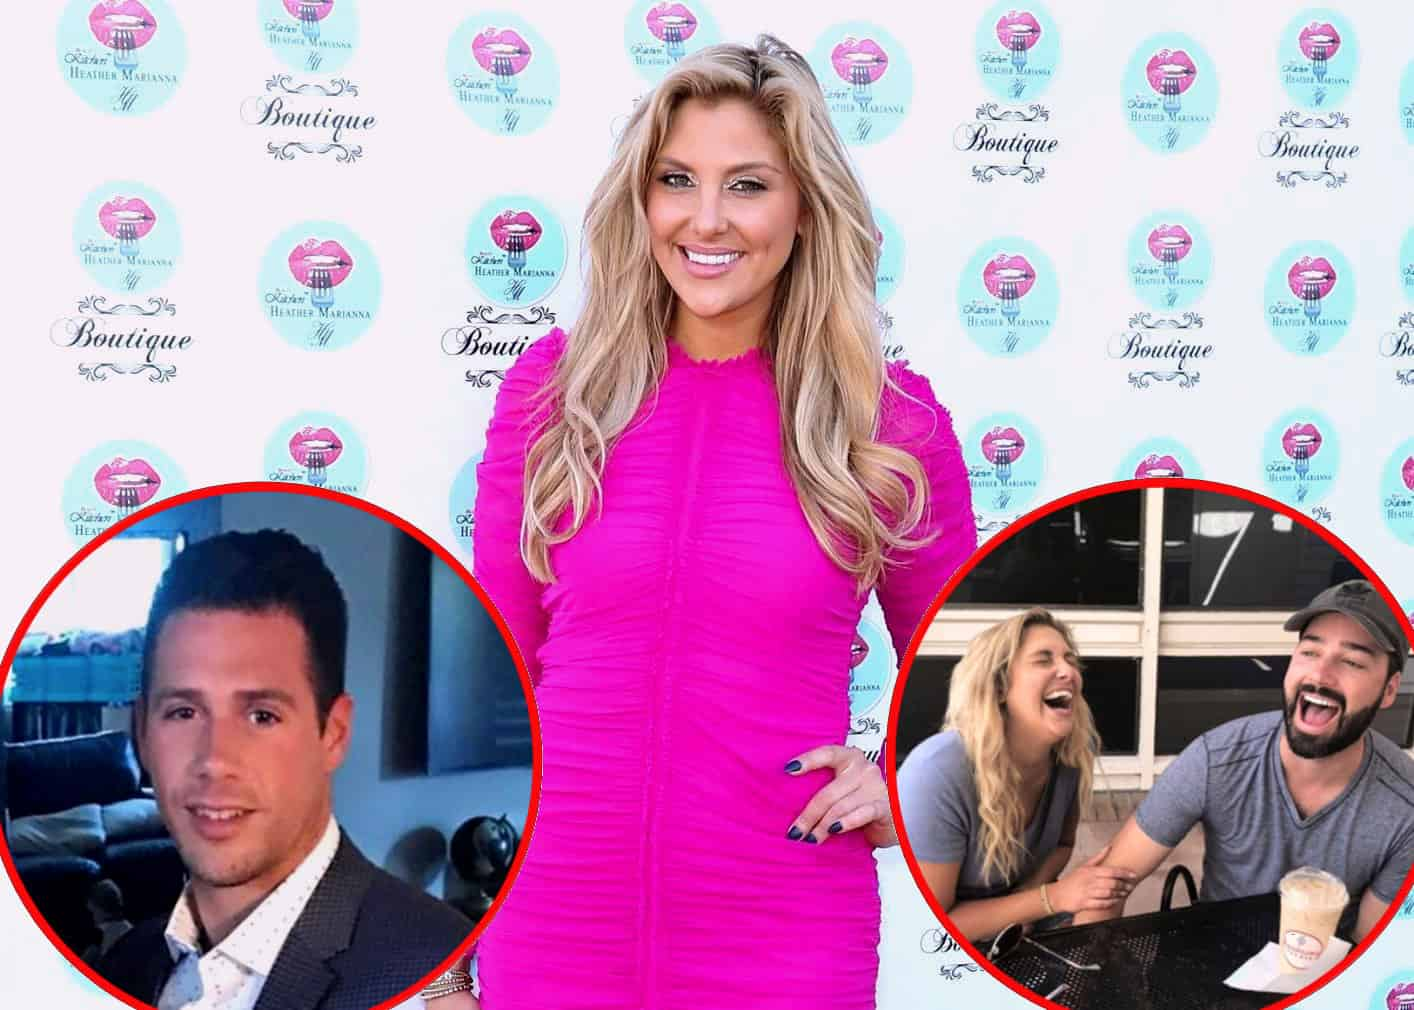 RHOC's Gina Kirschenheiter Reveals the Real Reason She Exposed Ex Matt's Affair and Confirms She's 'Really Happy' With Boyfriend Travis Mullen, Will She Be Seen Dating on the Show?